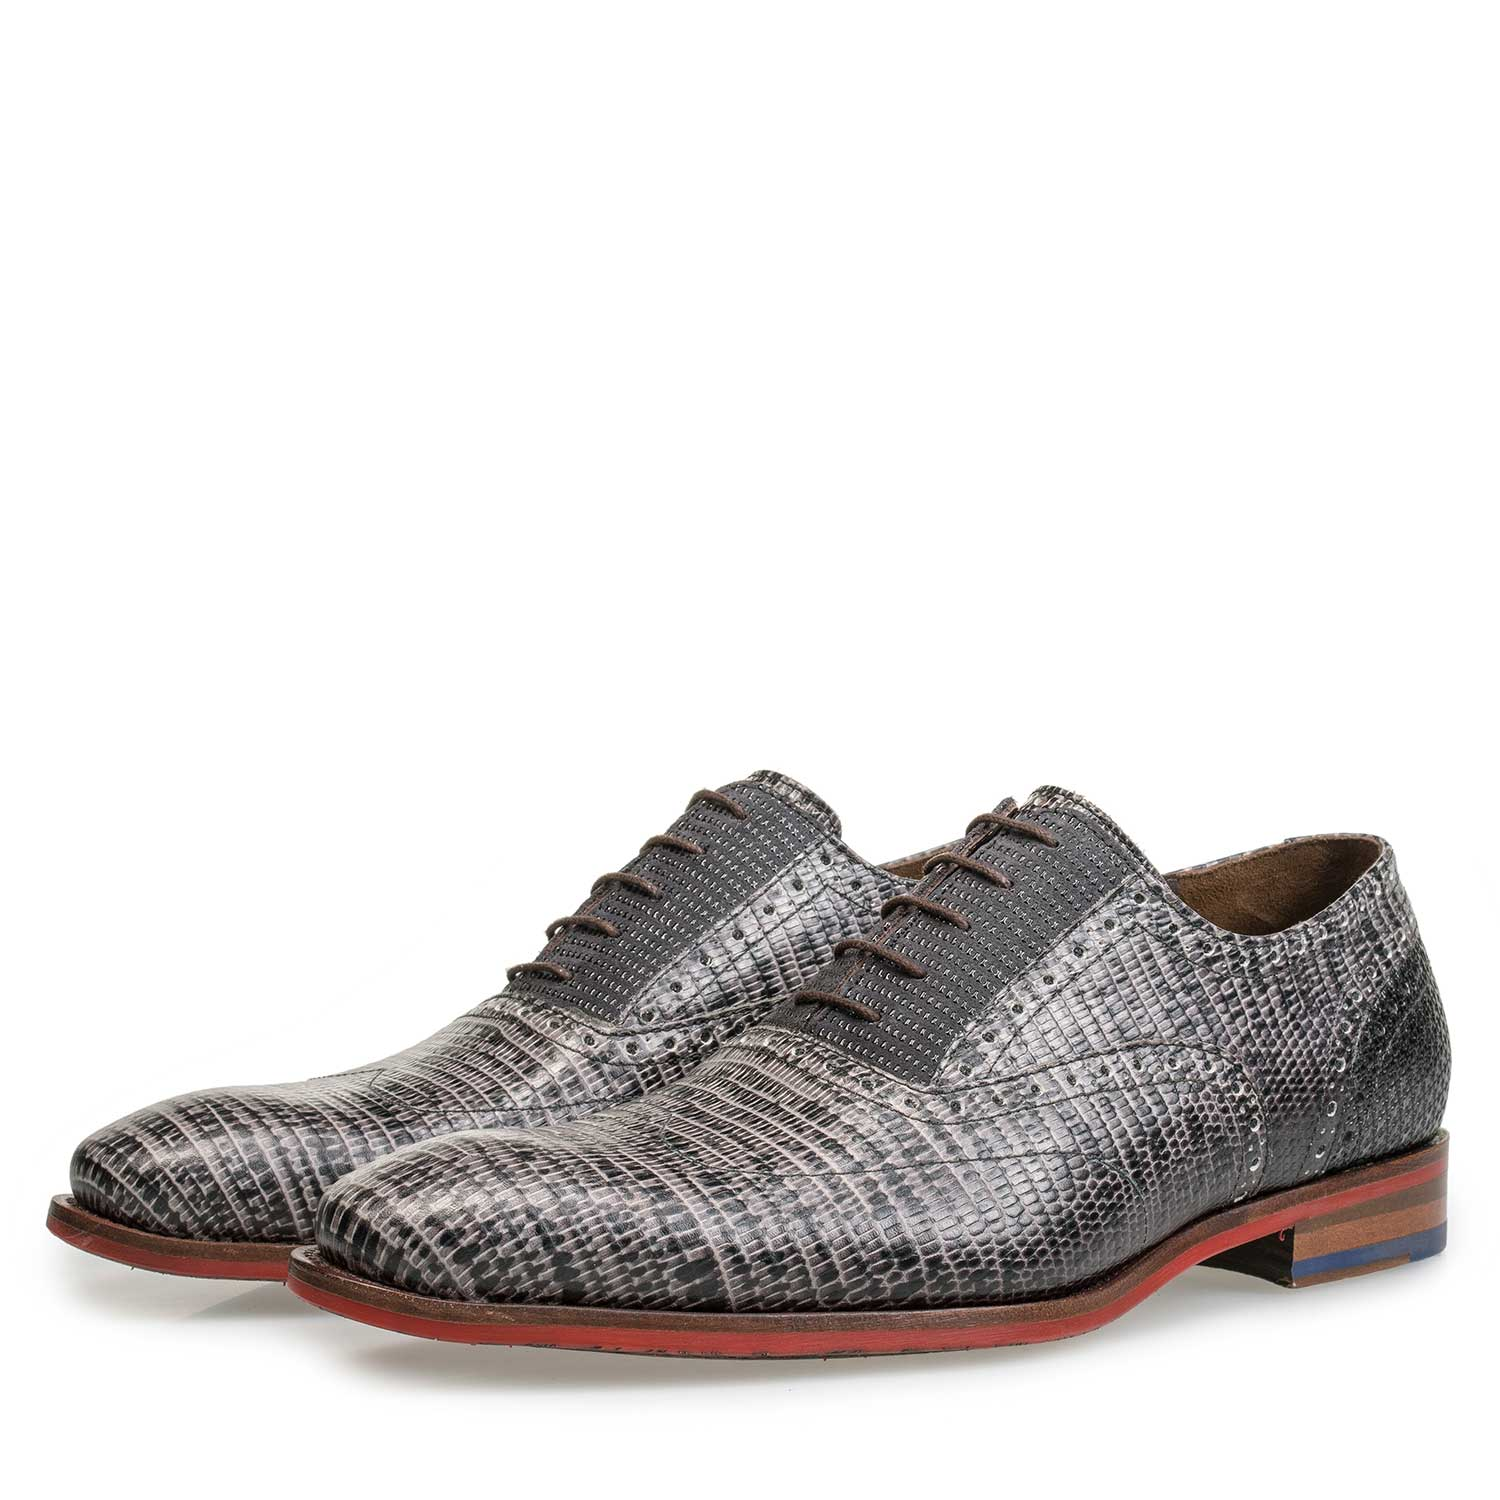 19114/32 - Grey lace shoe with lizard print